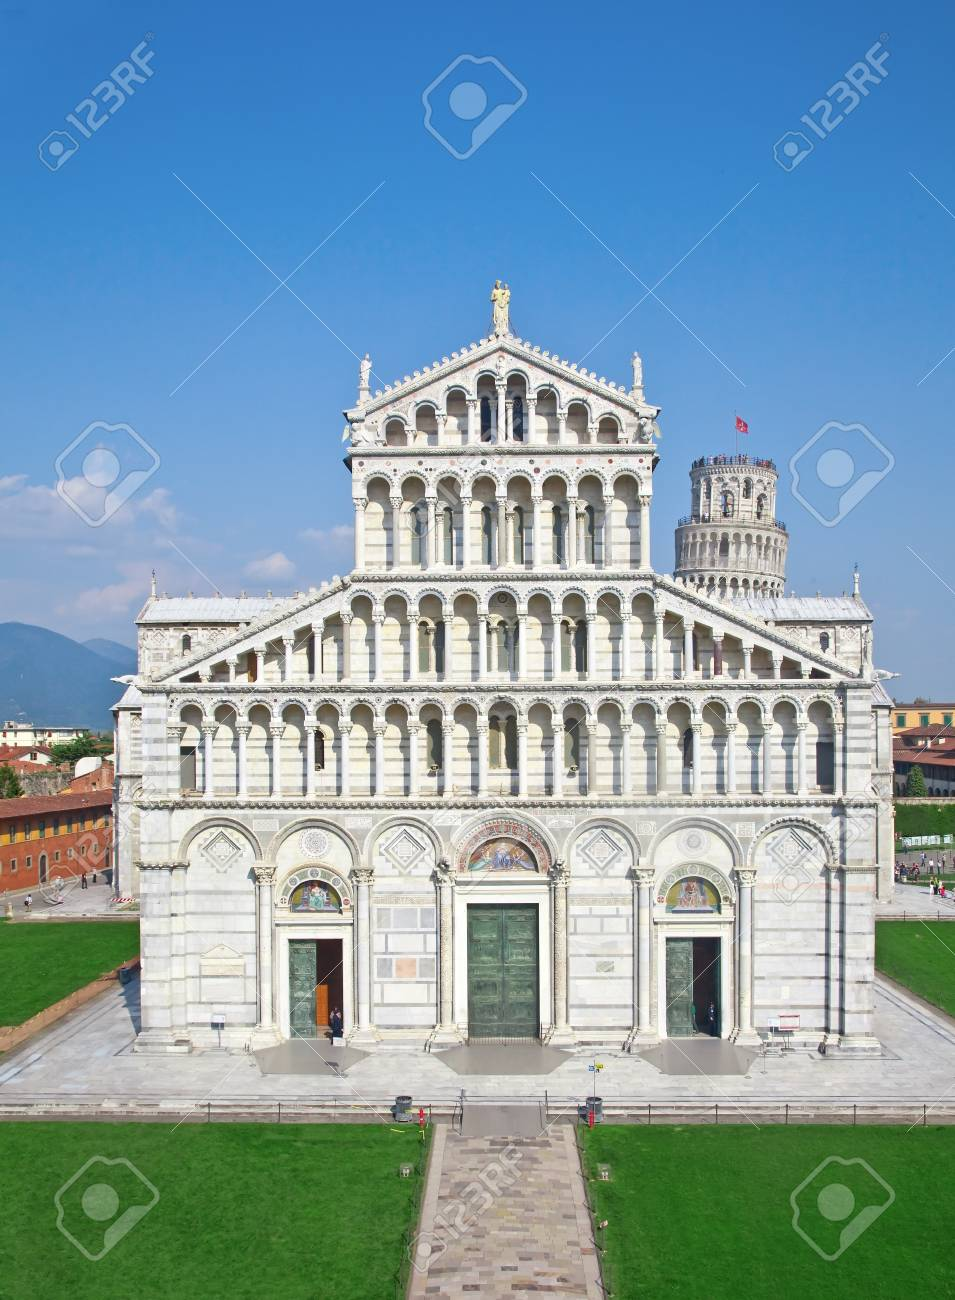 Duomo and leaning tower on miracoli square, pisa Stock Photo - 7160864